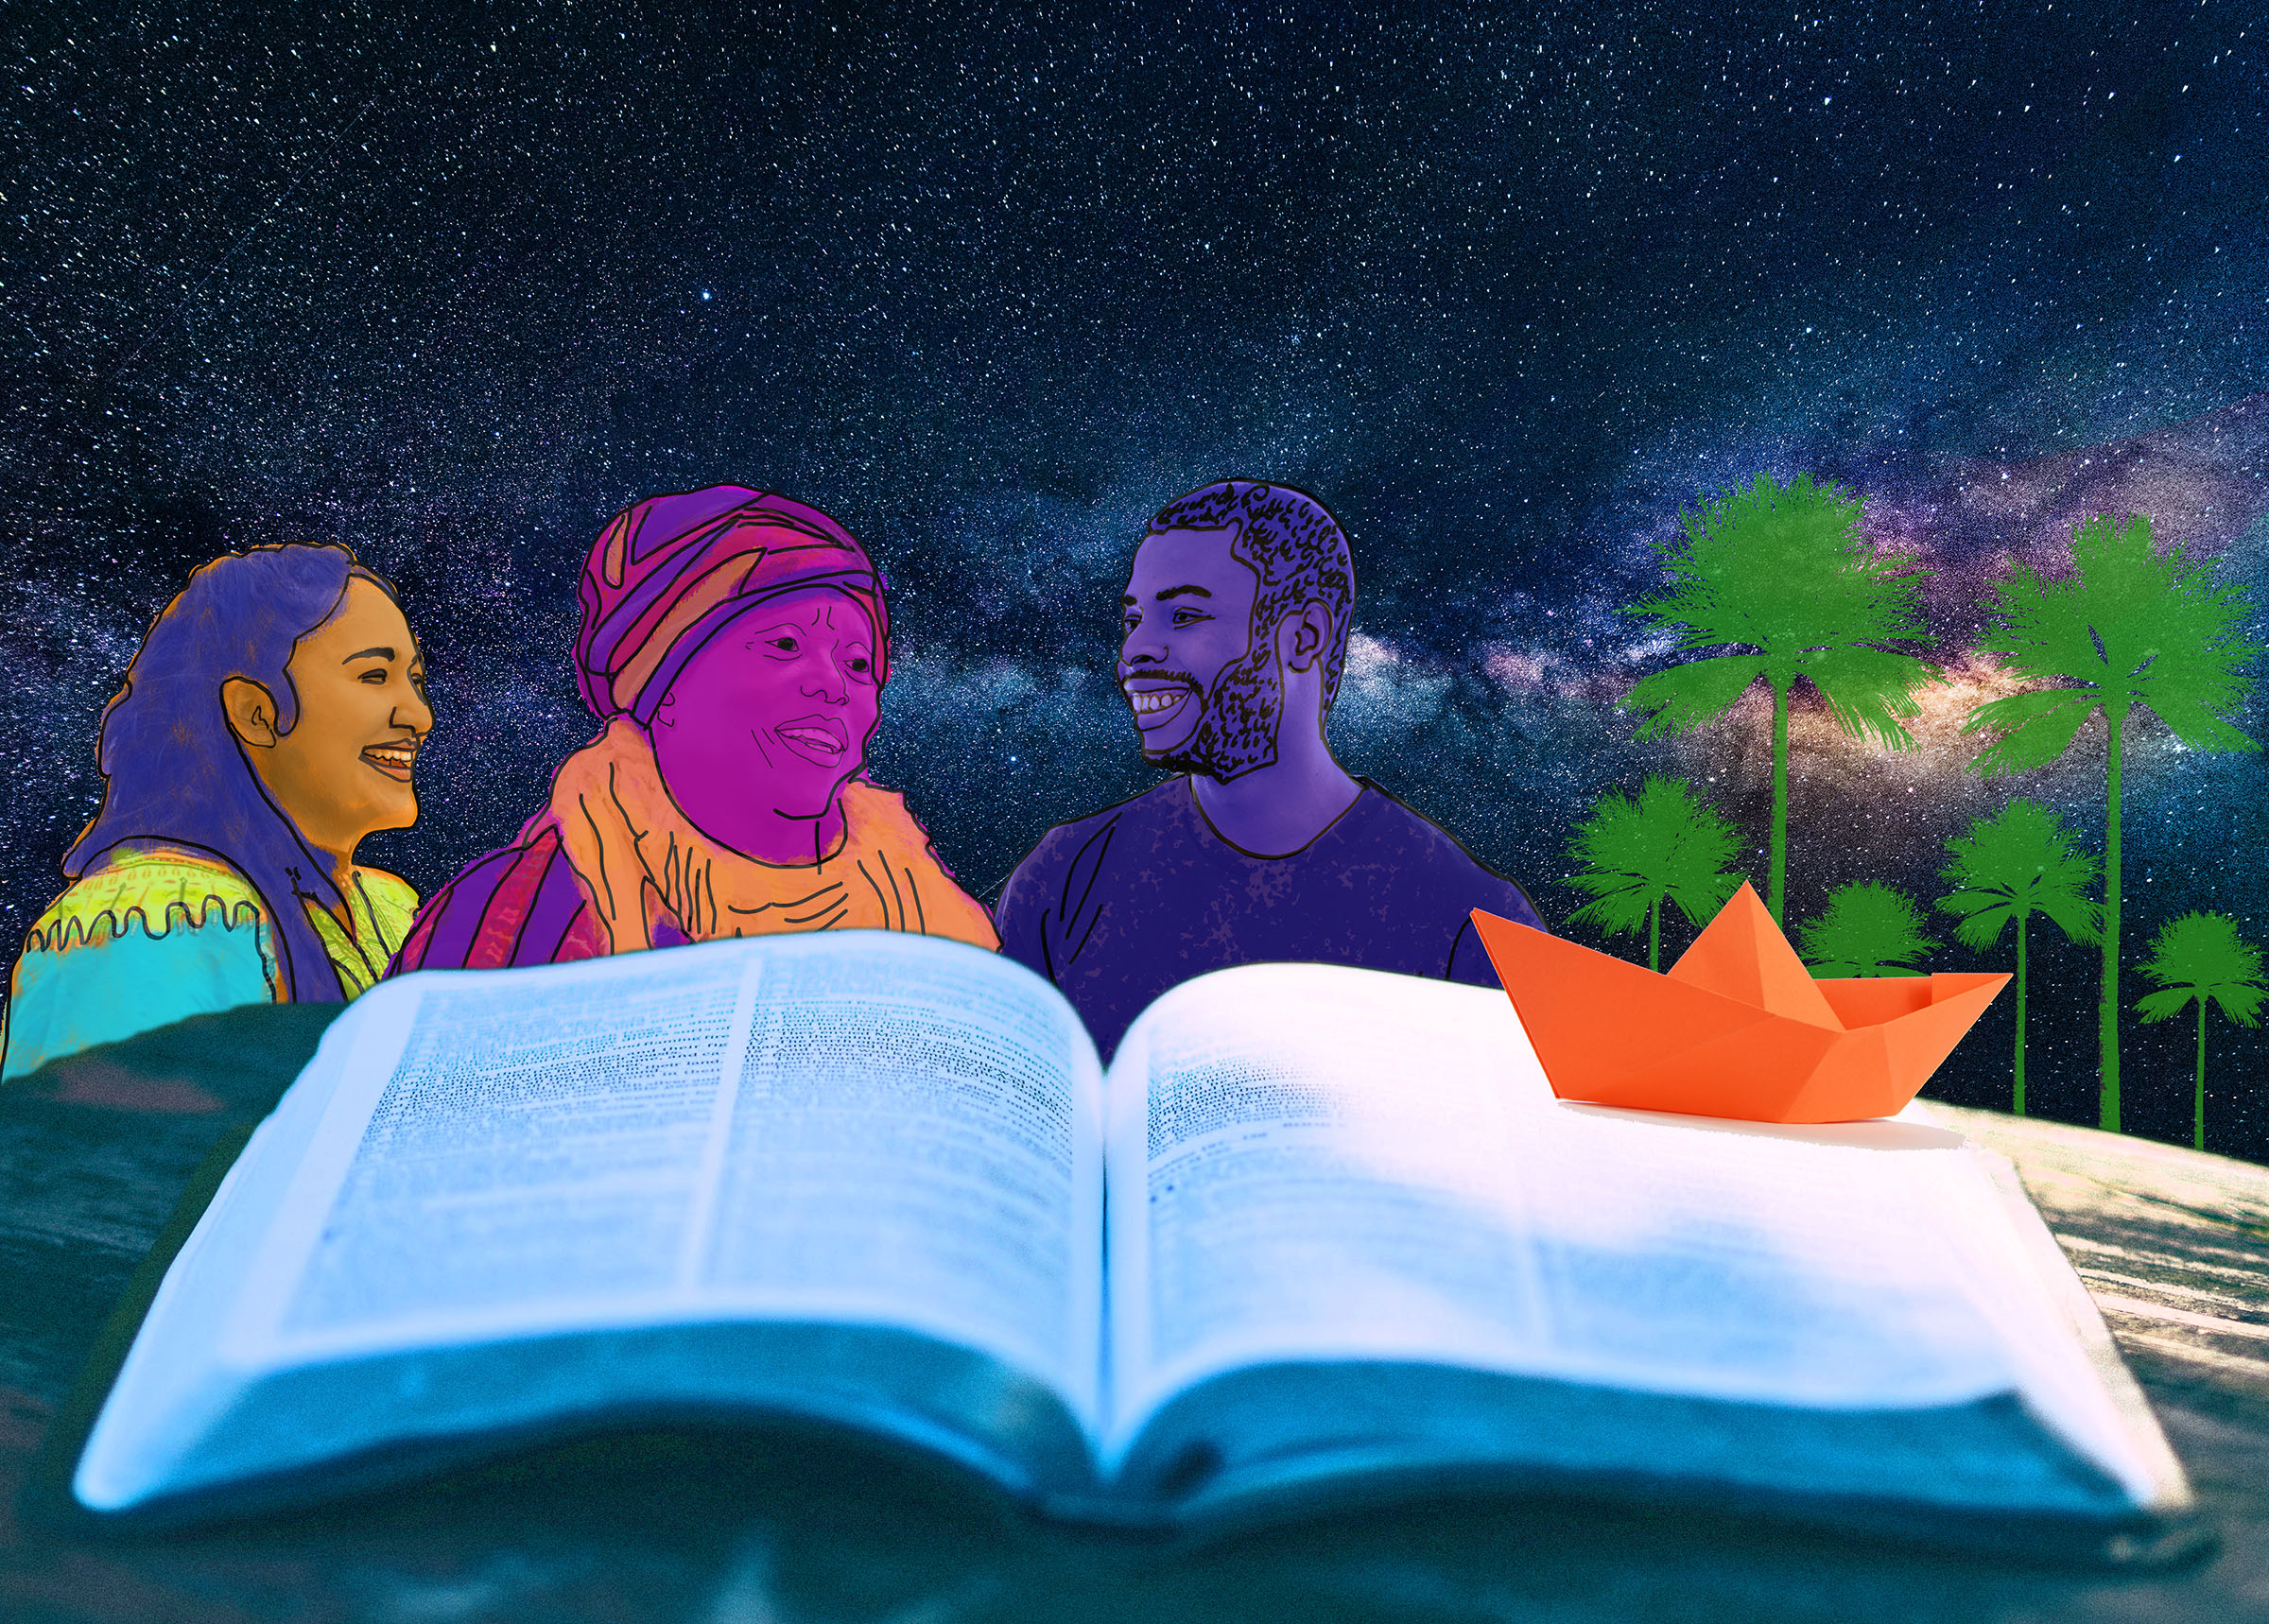 book with paper boat palm trees comic sky and three people telling stories